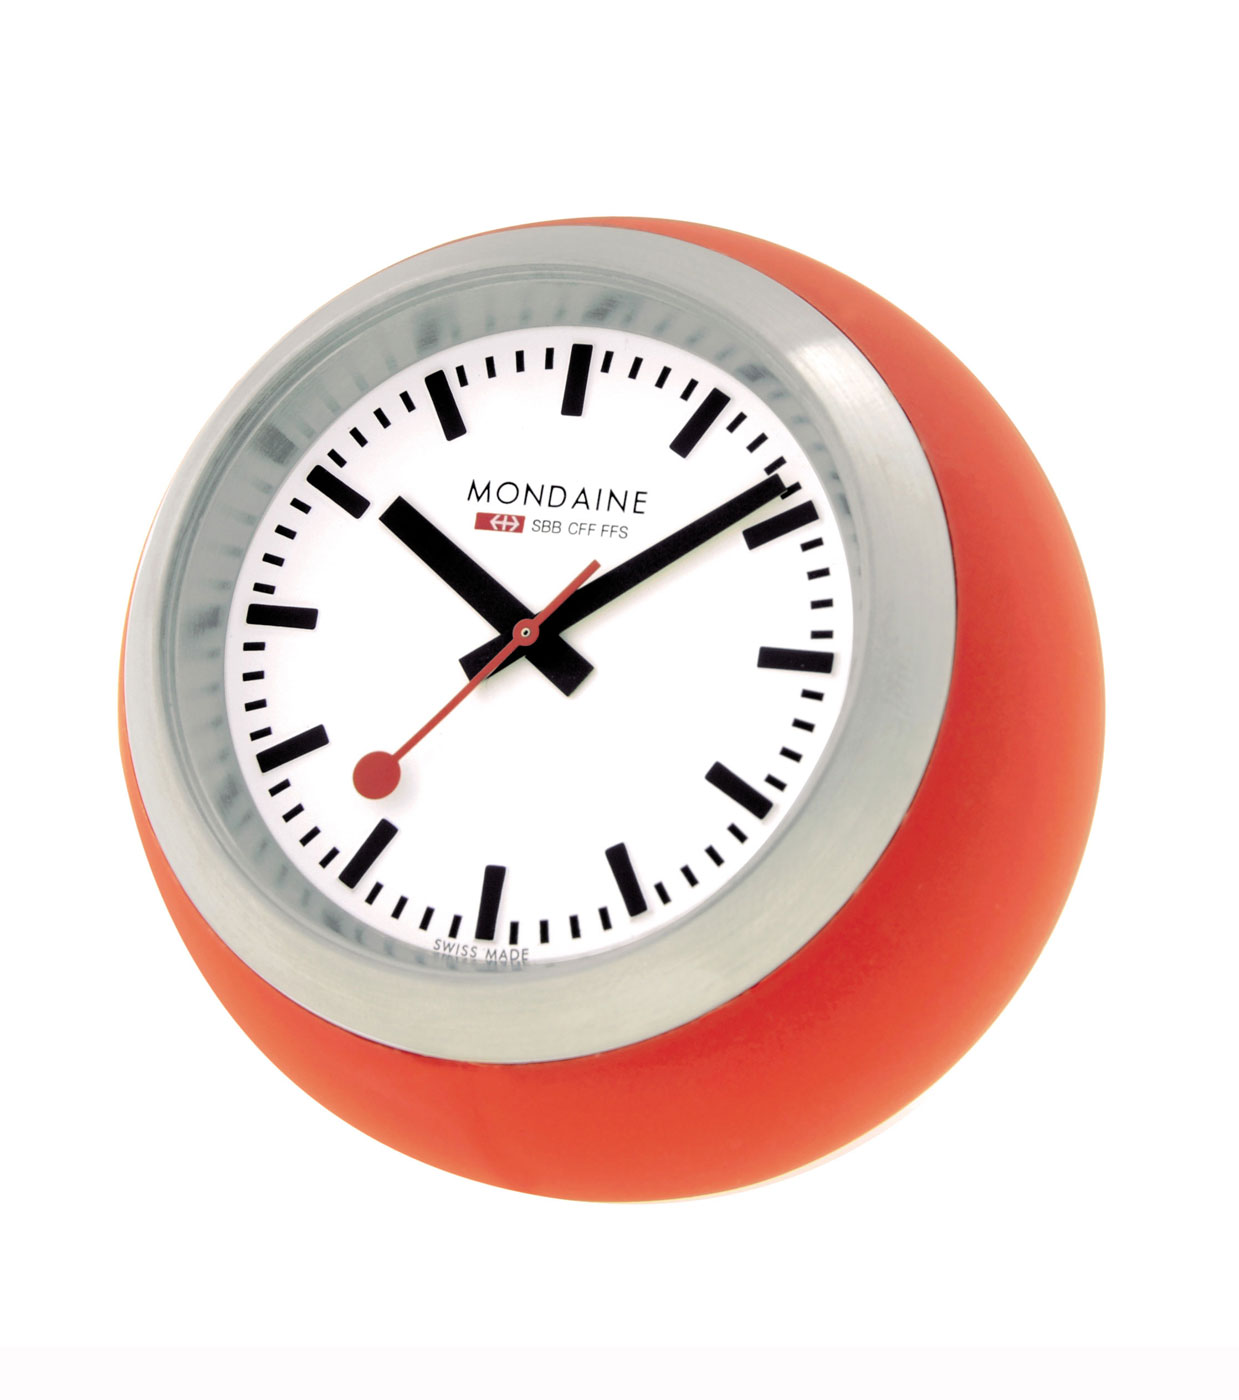 Mondaine wall clocks table clock - Mondaine wall clocks ...